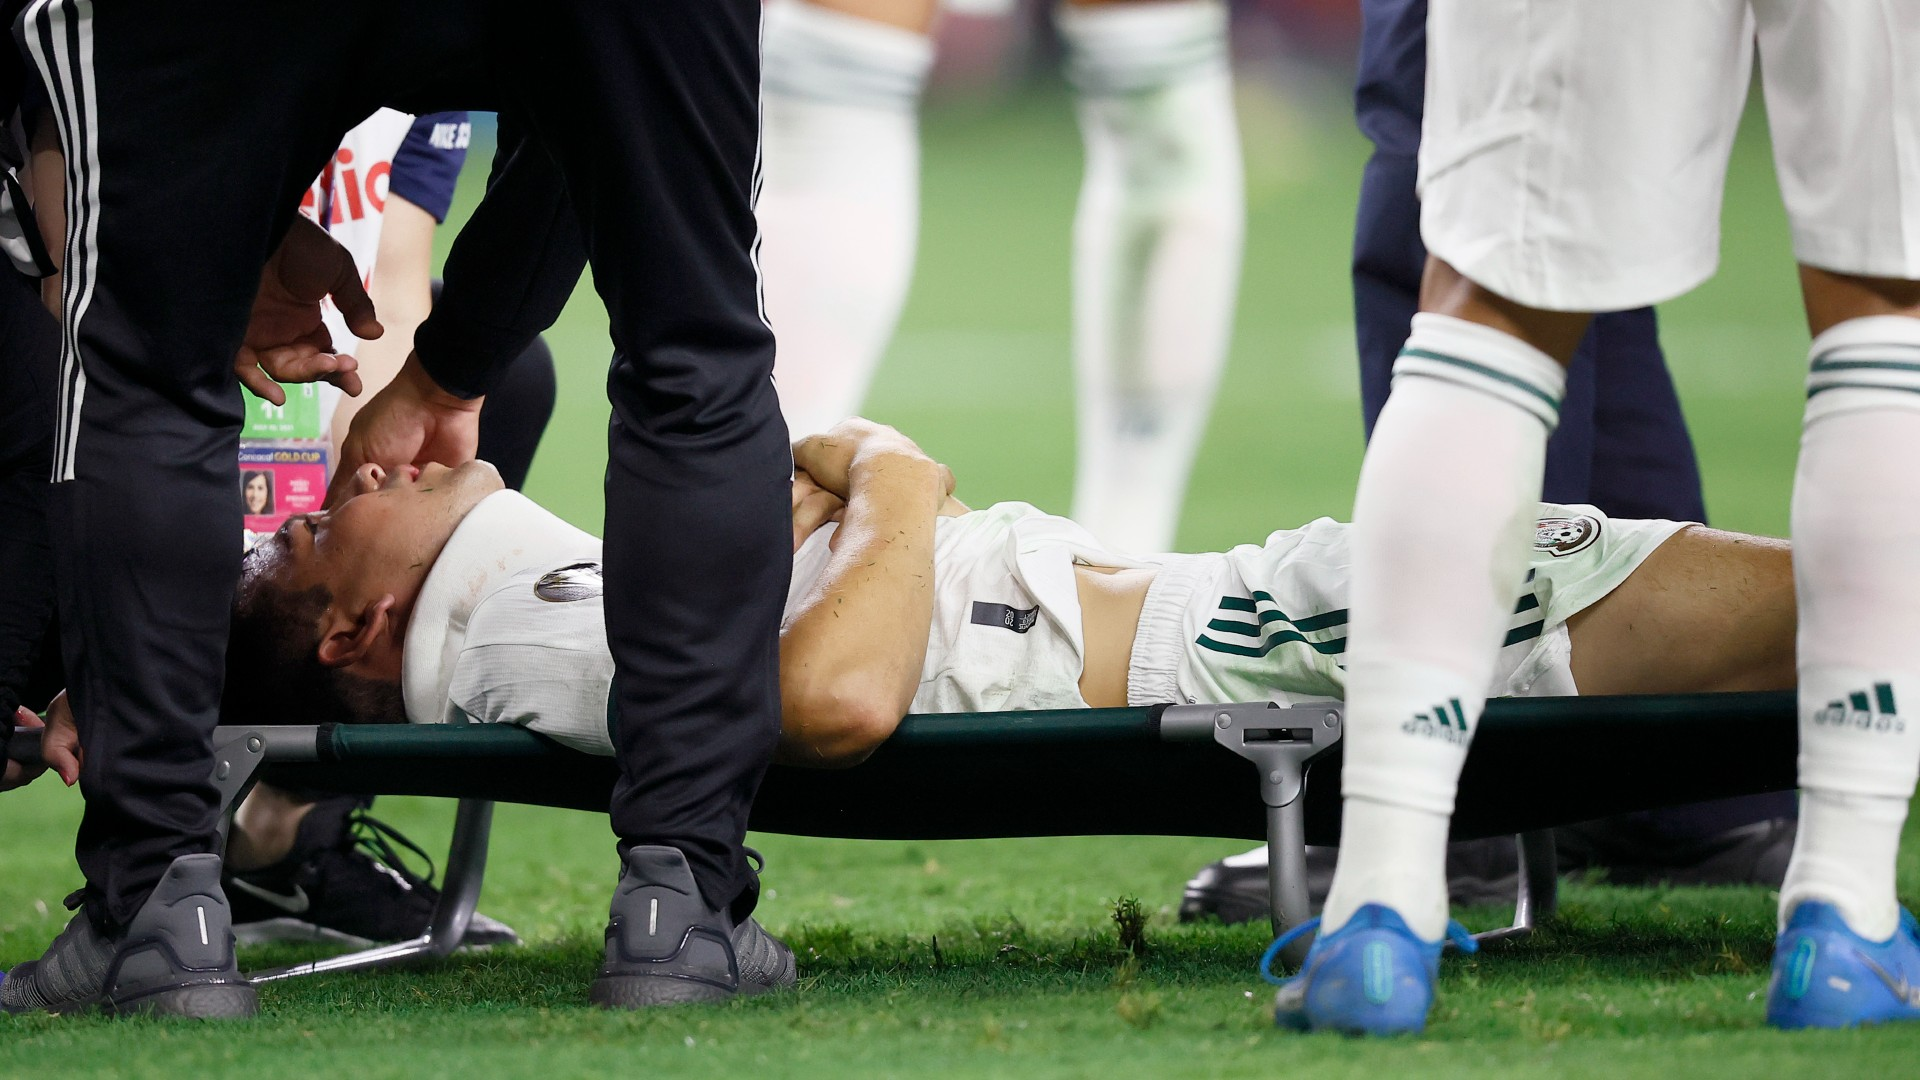 Mexico star Lozano ruled out for rest of Gold Cup after suffering gruesome  head injury | Goal.com